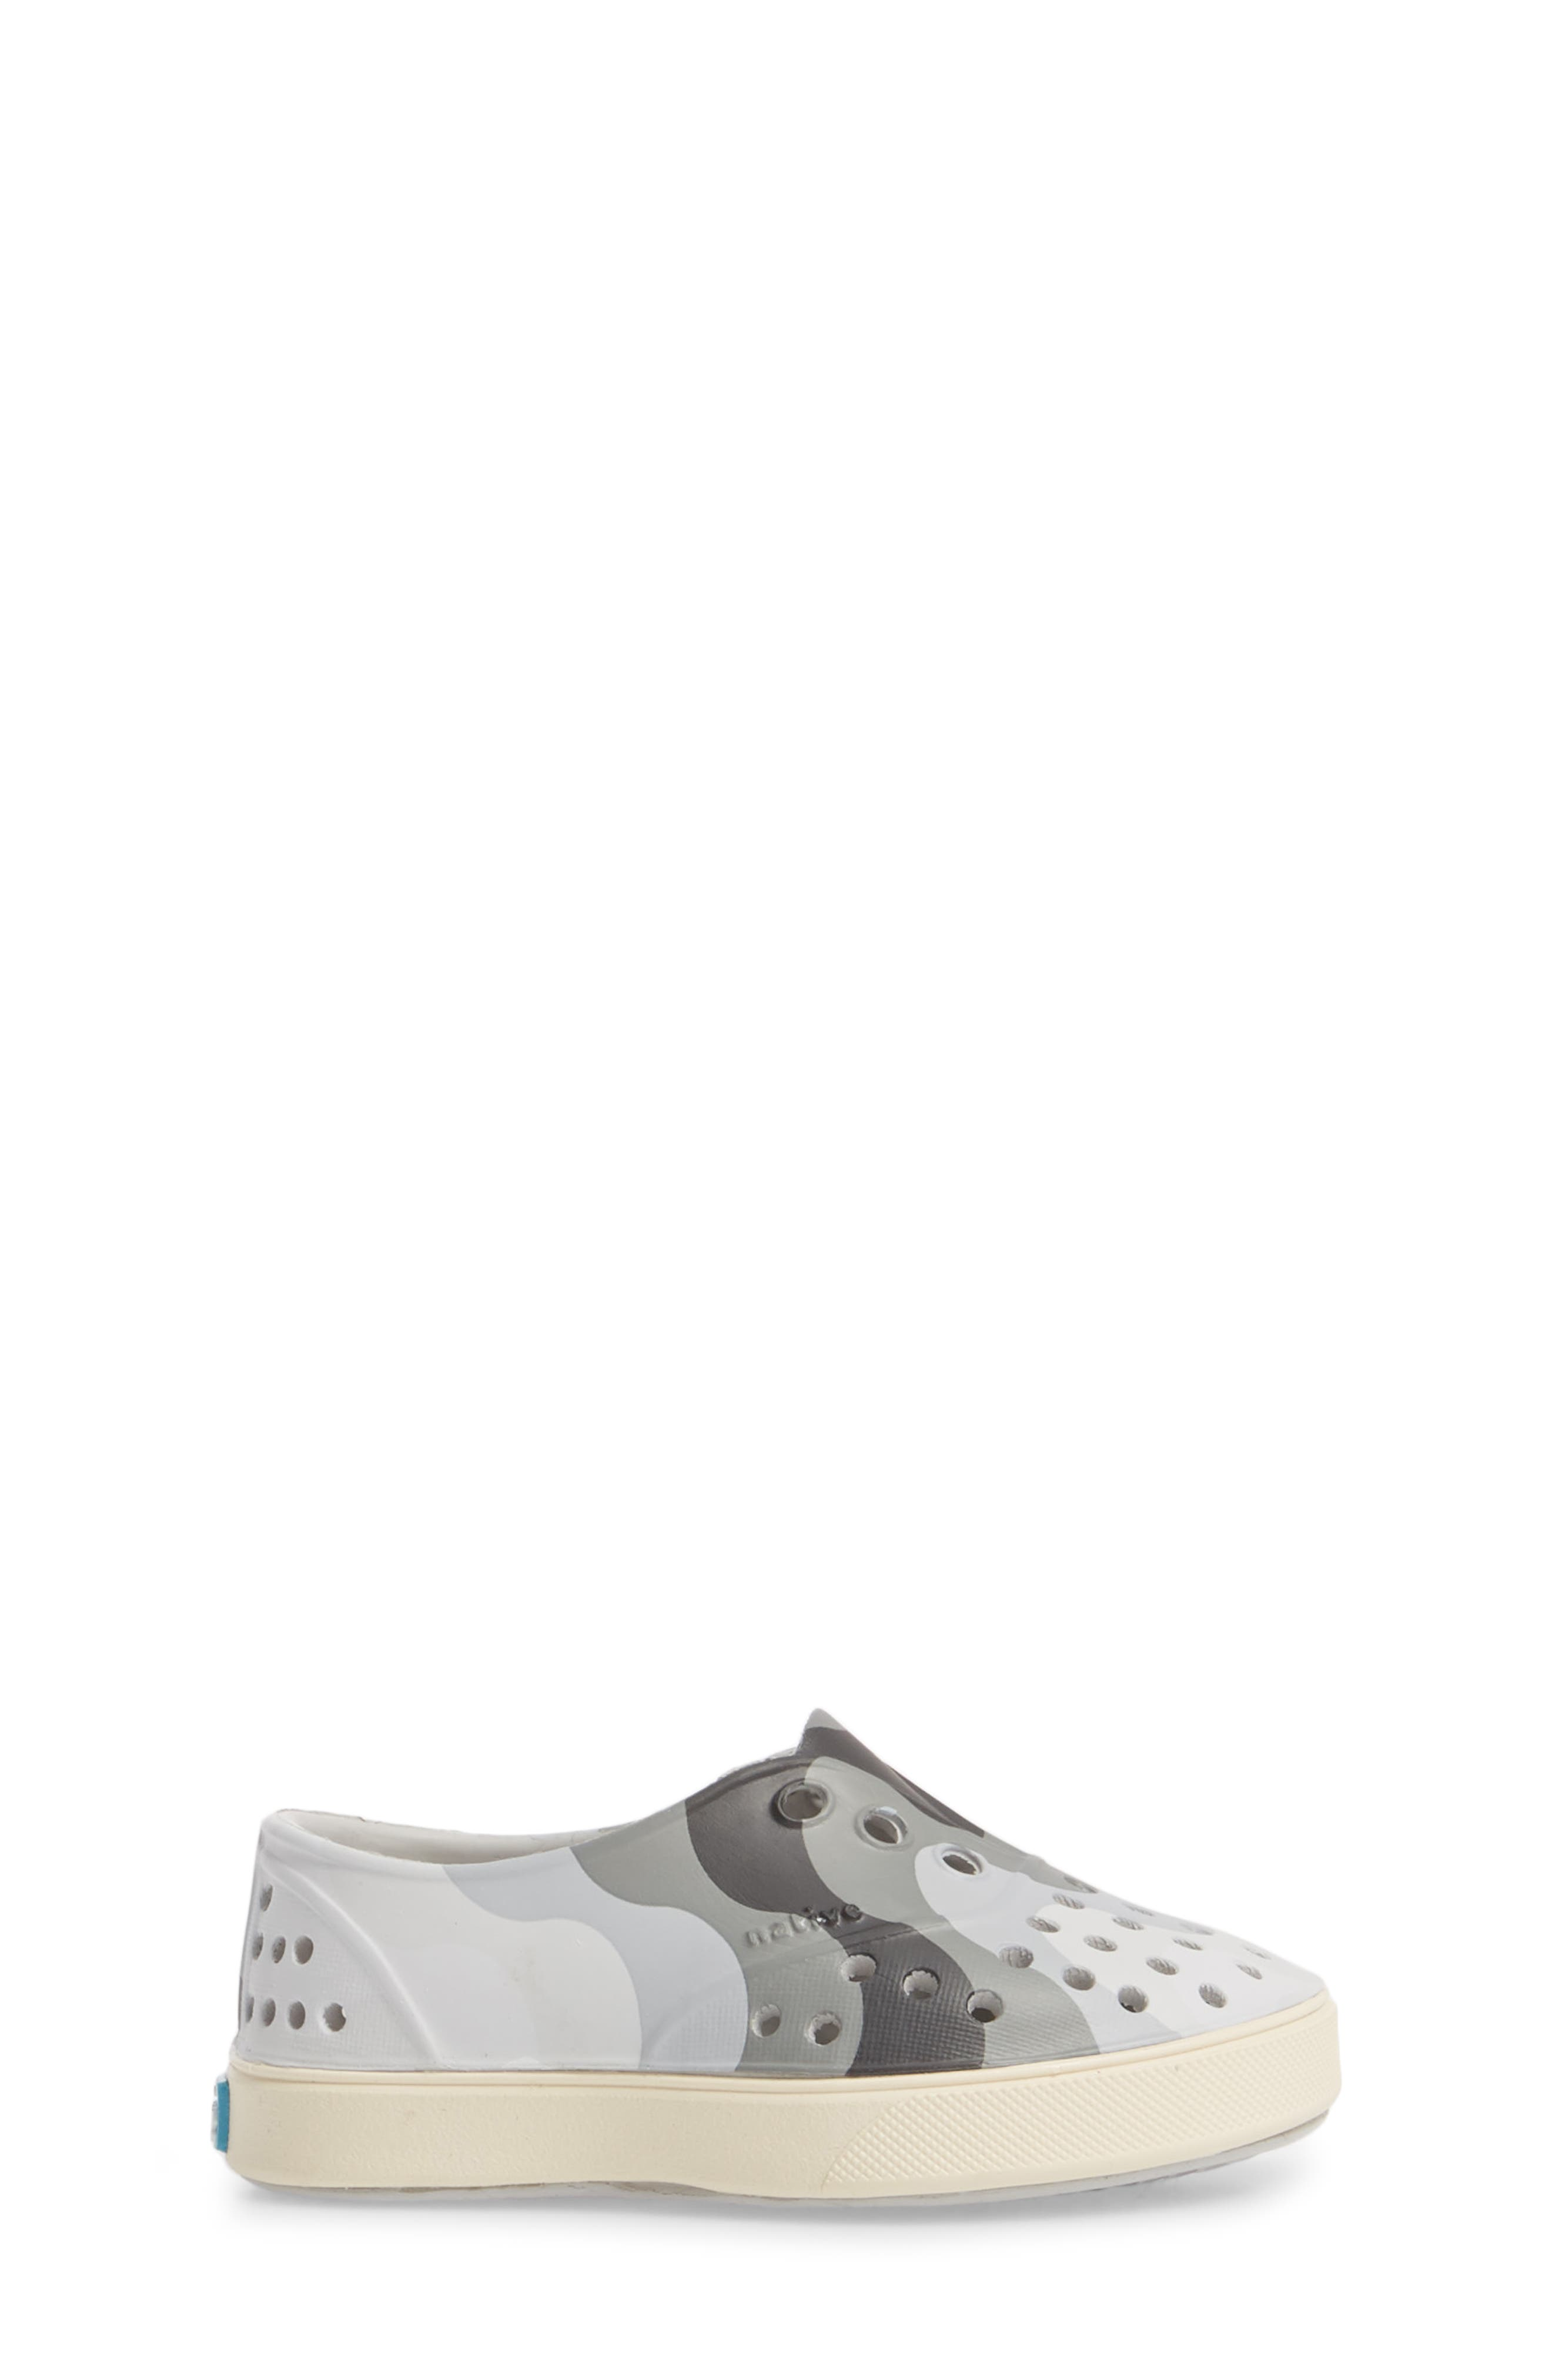 NATIVE SHOES,                             'Miller' Water Friendly Perforated Sneaker,                             Alternate thumbnail 3, color,                             022